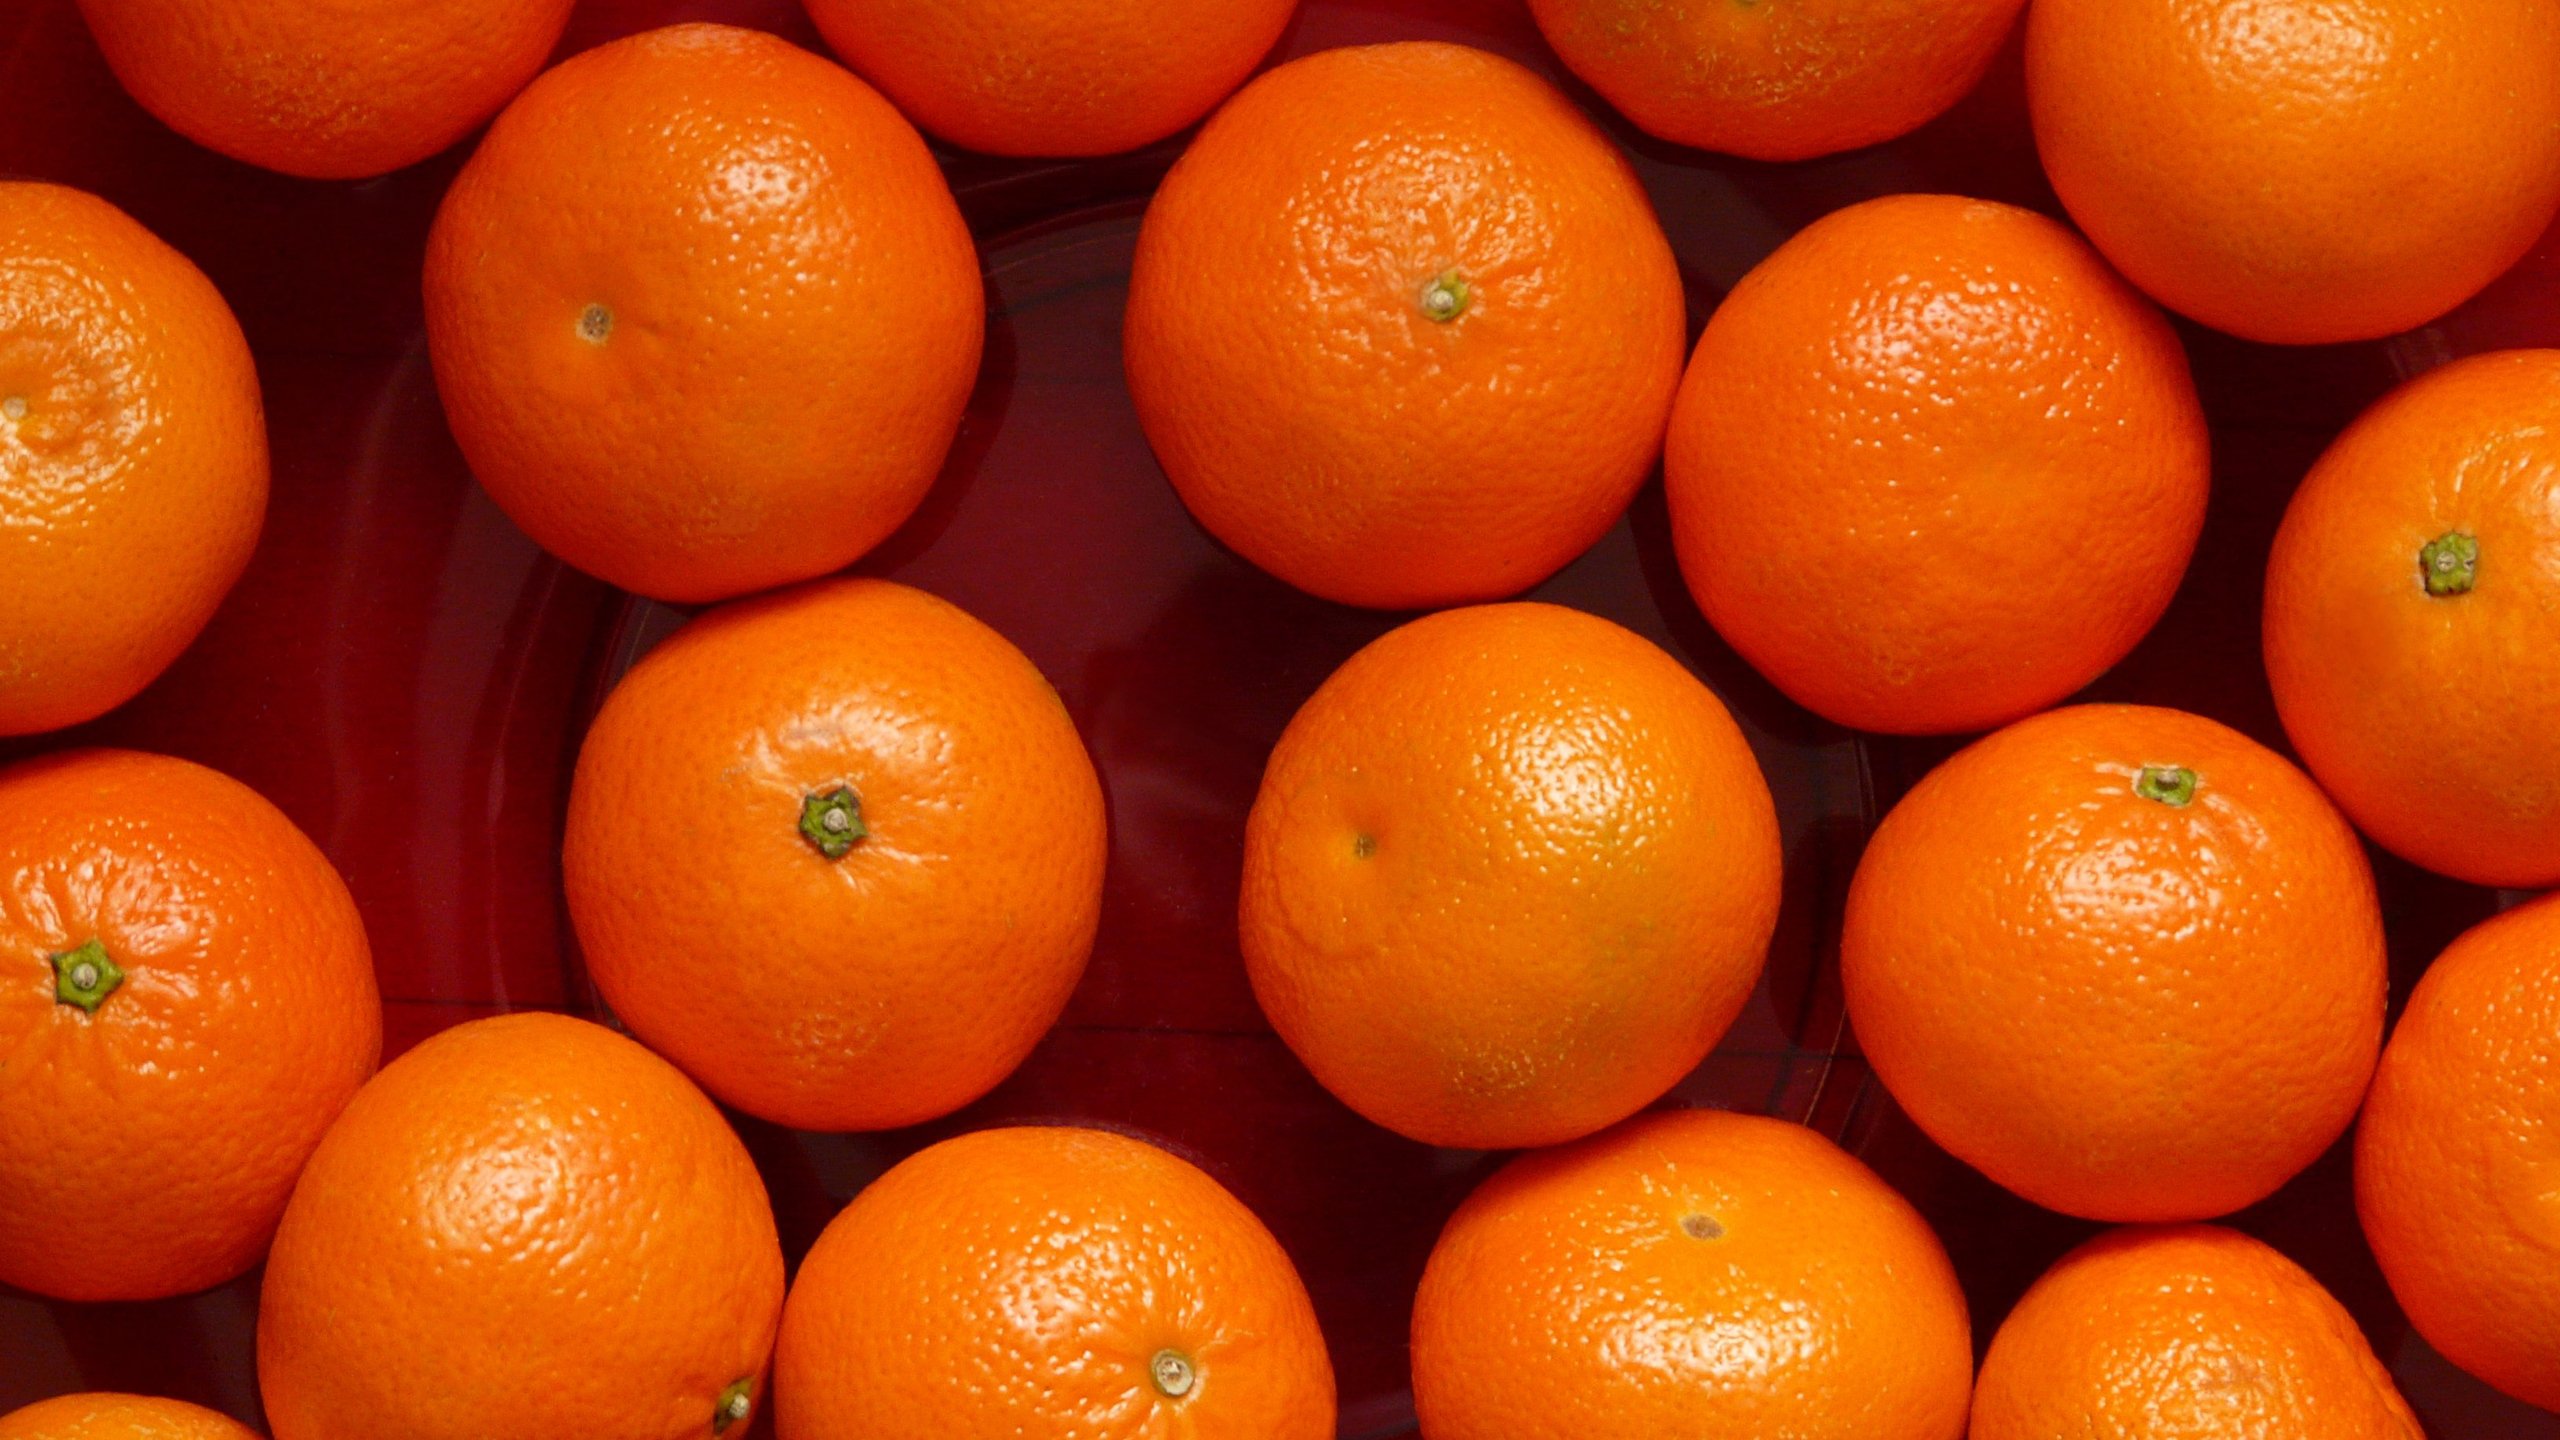 mandarin oranges wallpaper background 54250